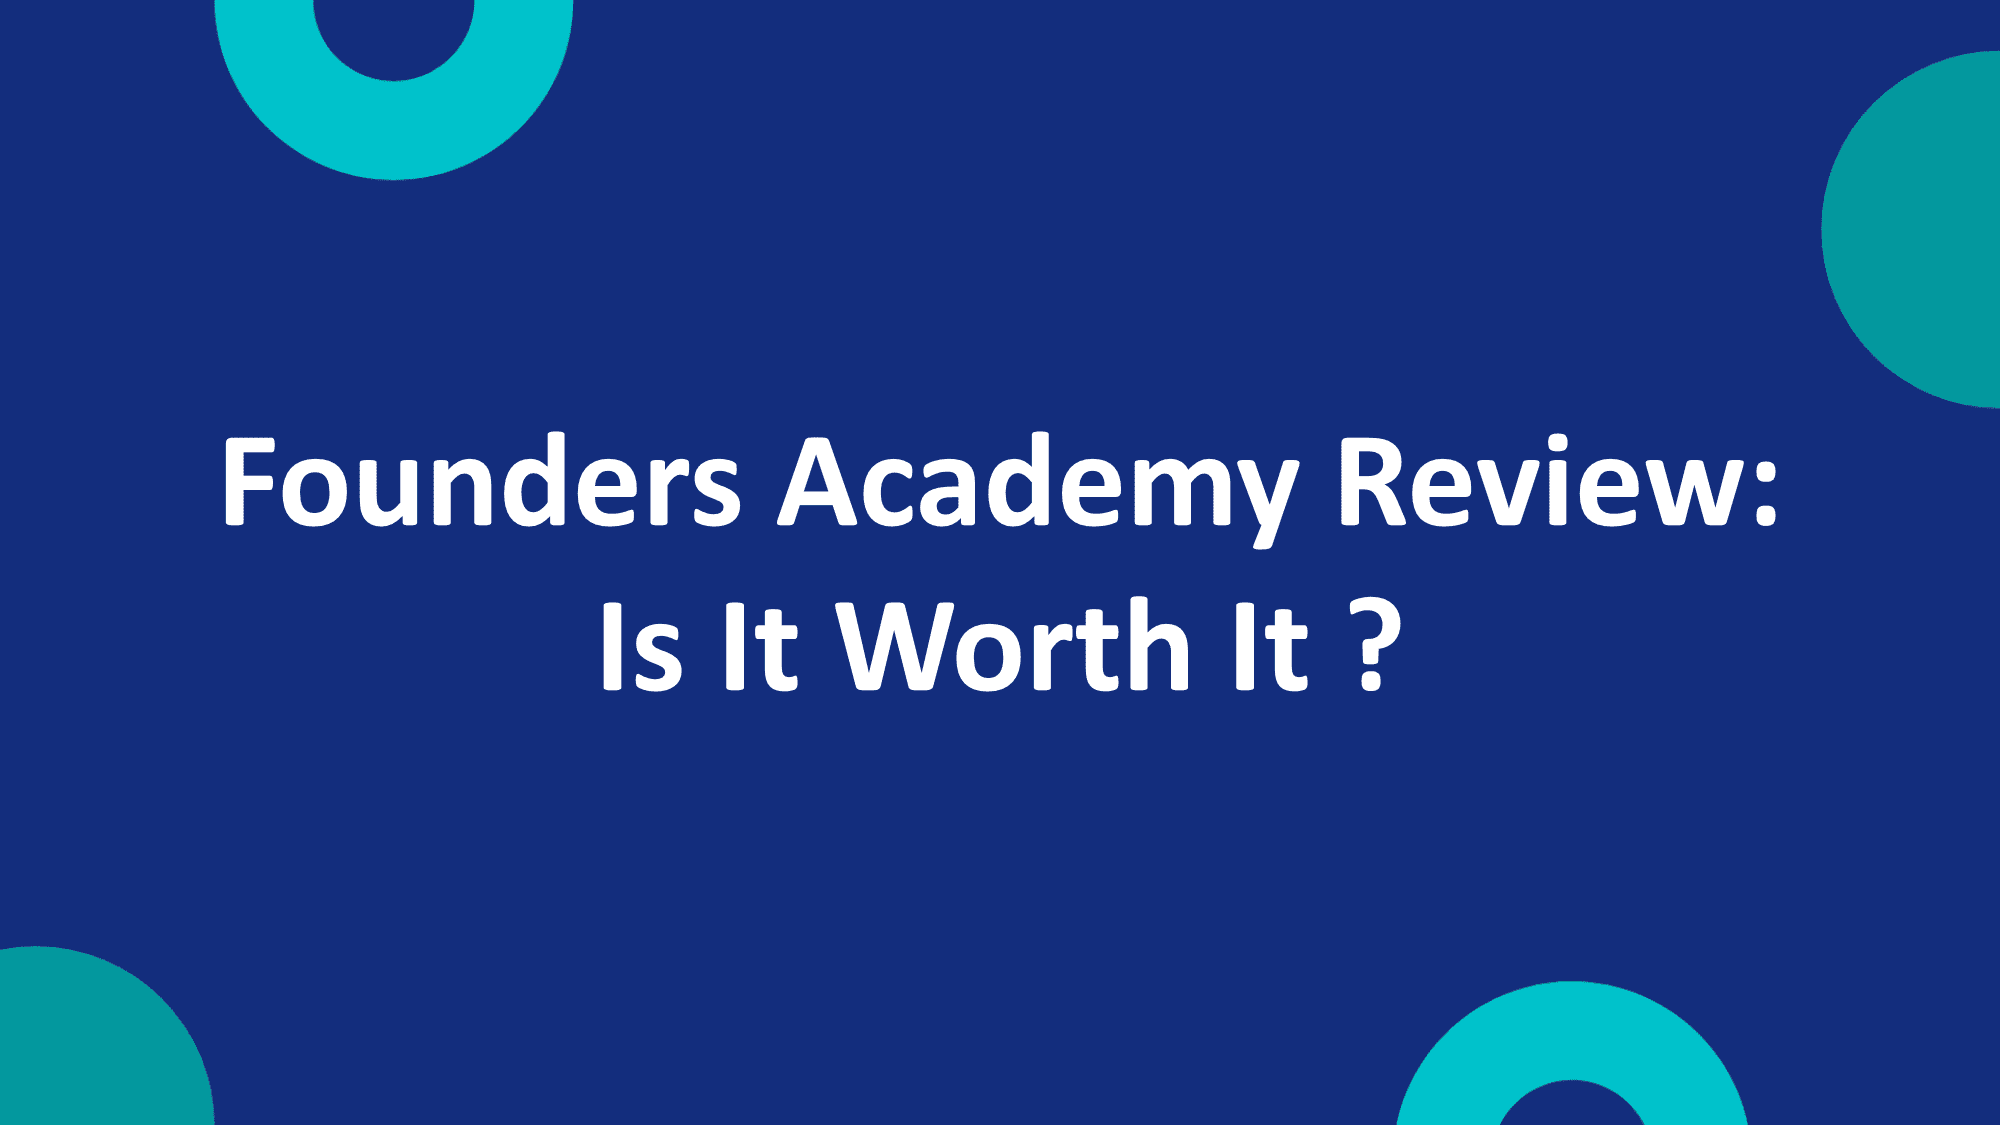 Founders Academy Review